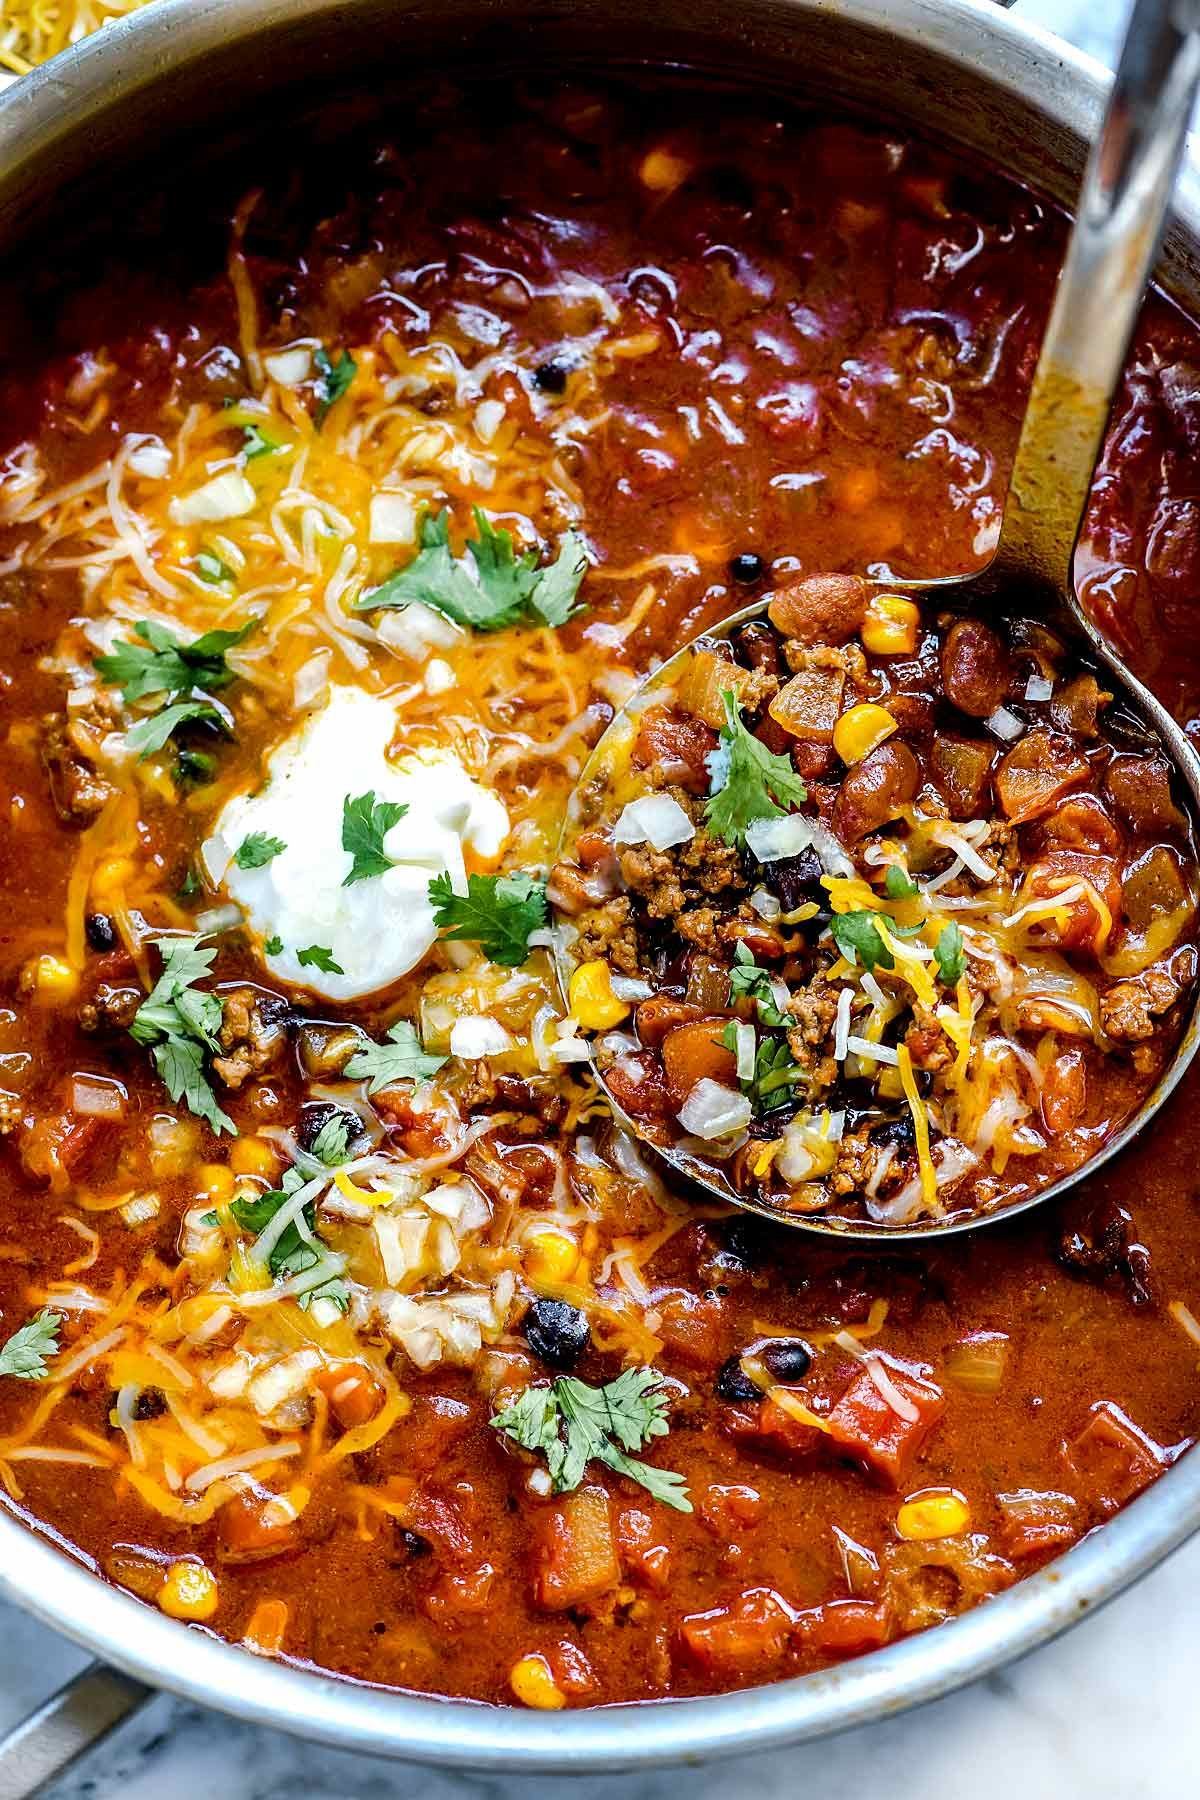 Easy Taco Soup (Stove Top, Crock Pot or Instant Pot) | foodiecrush .com